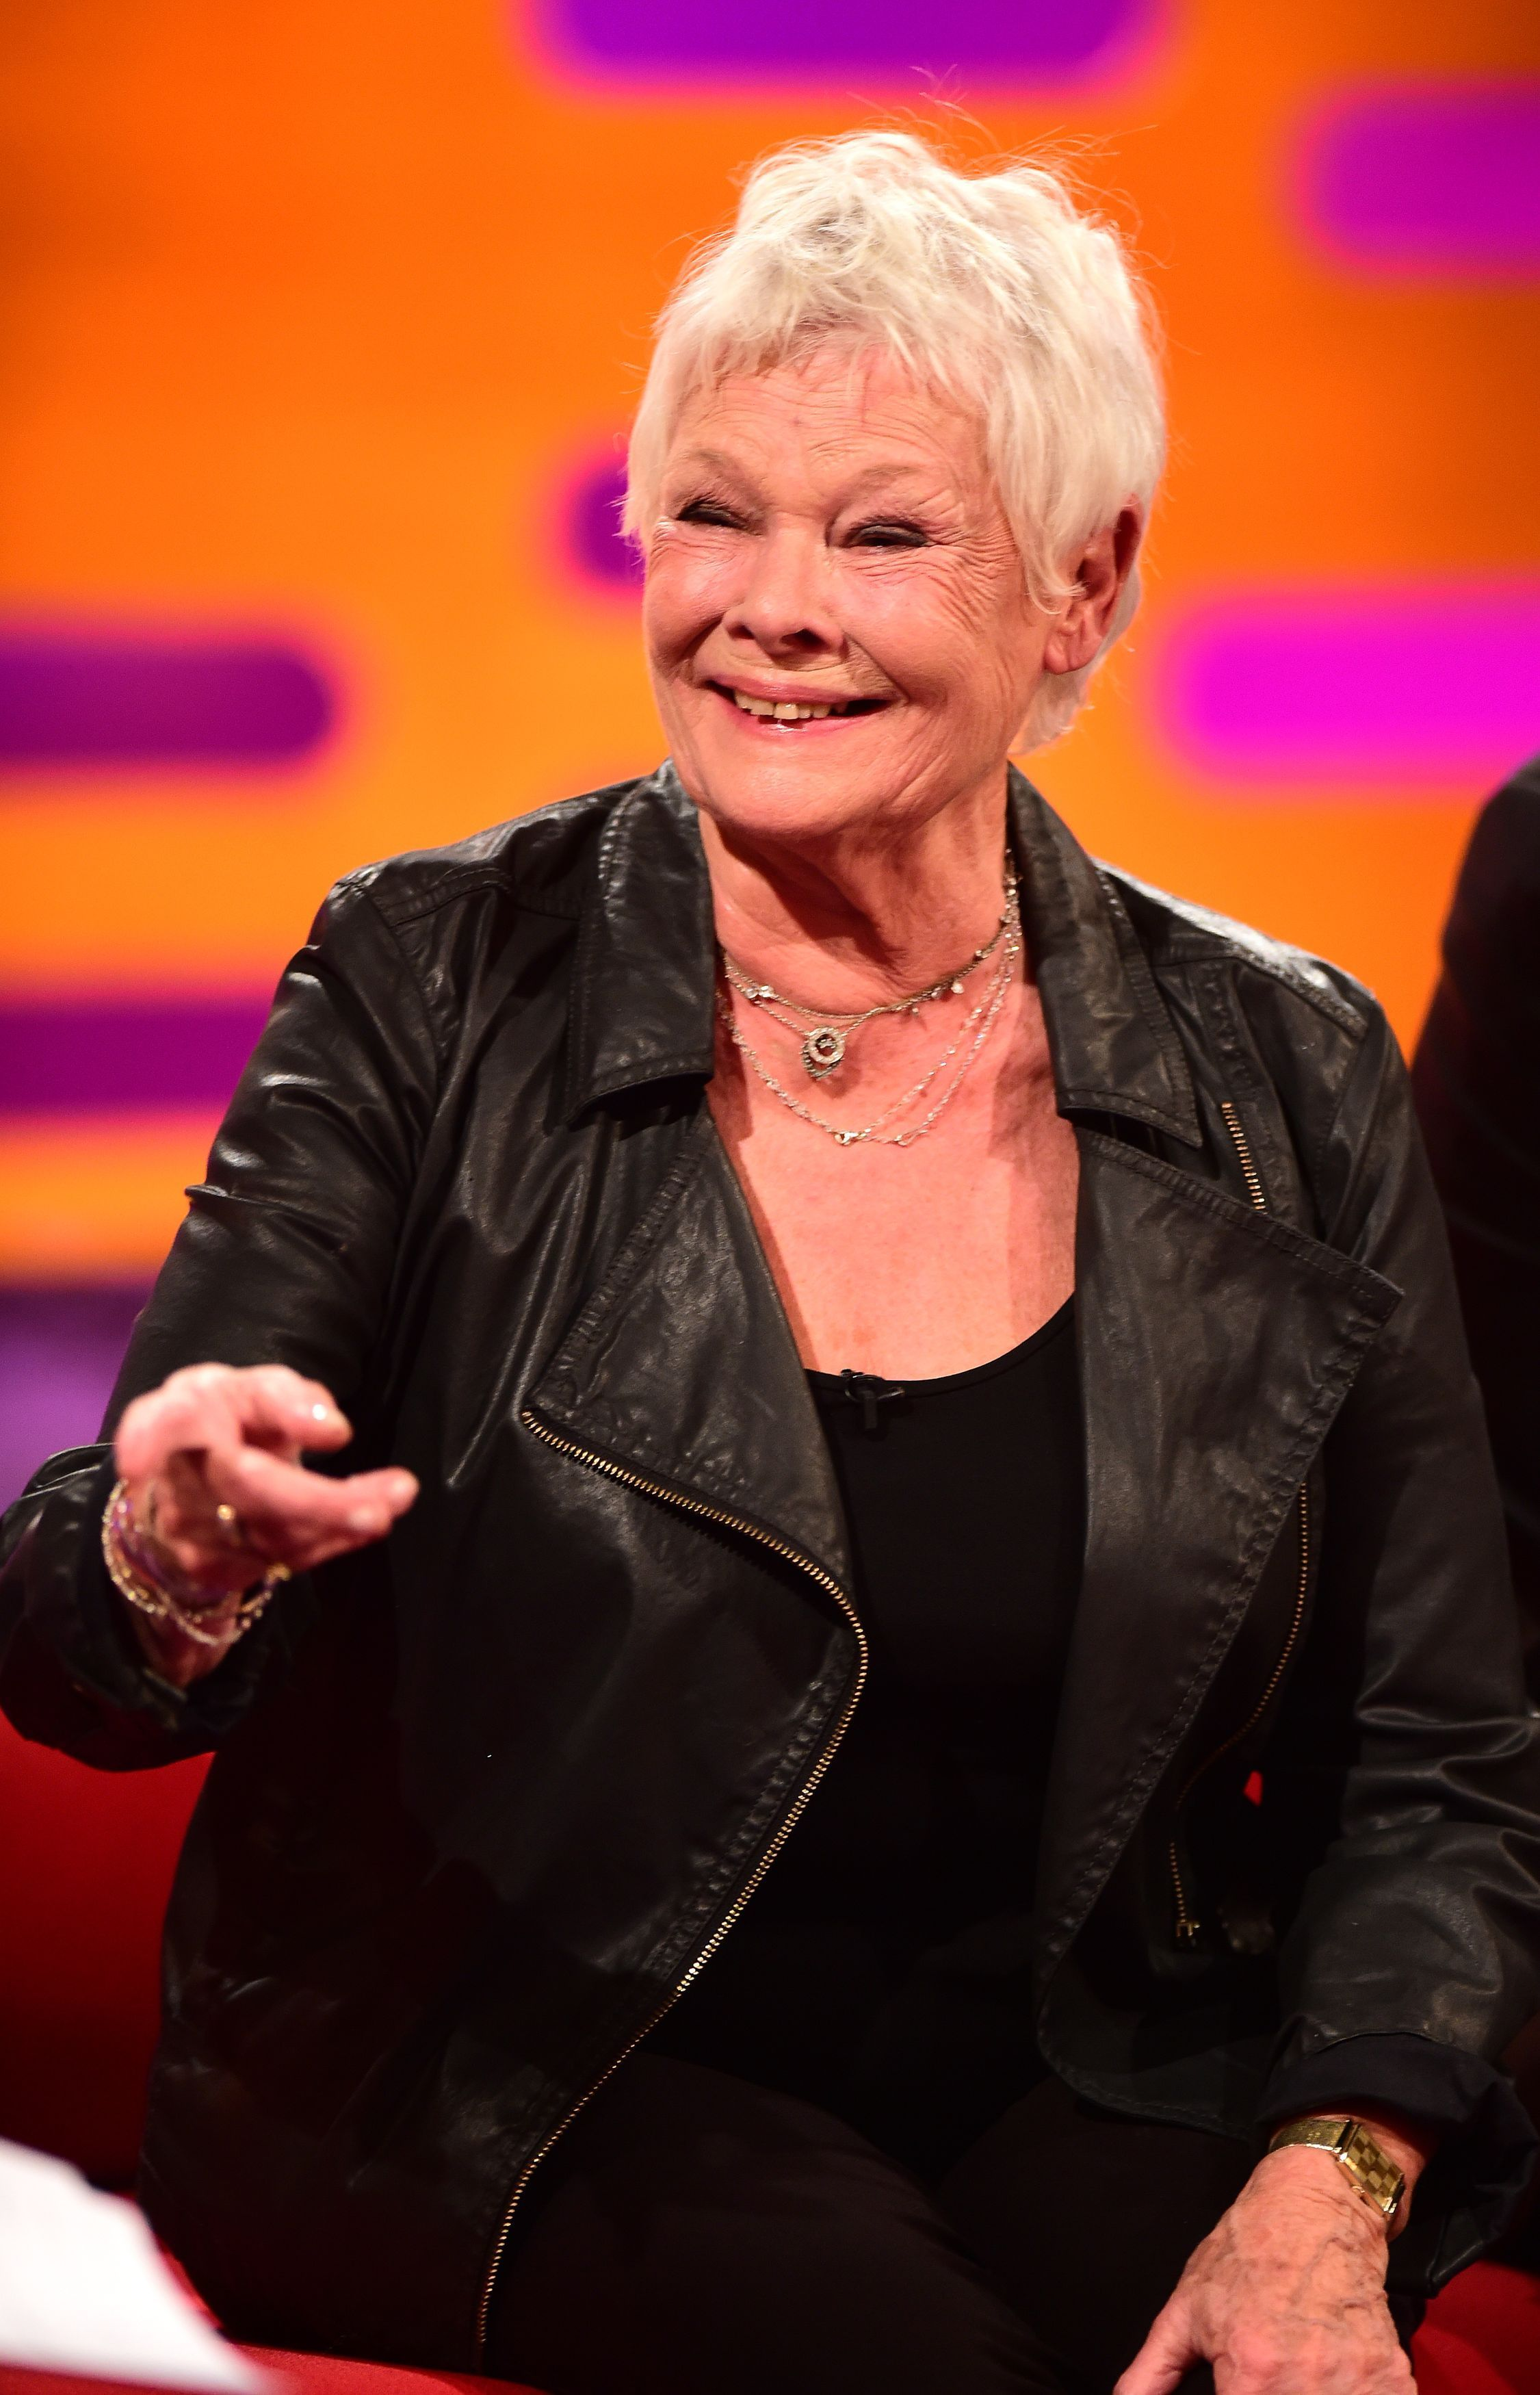 Dame Judi Dench during filming for The Graham Norton show at the London Studios, London.